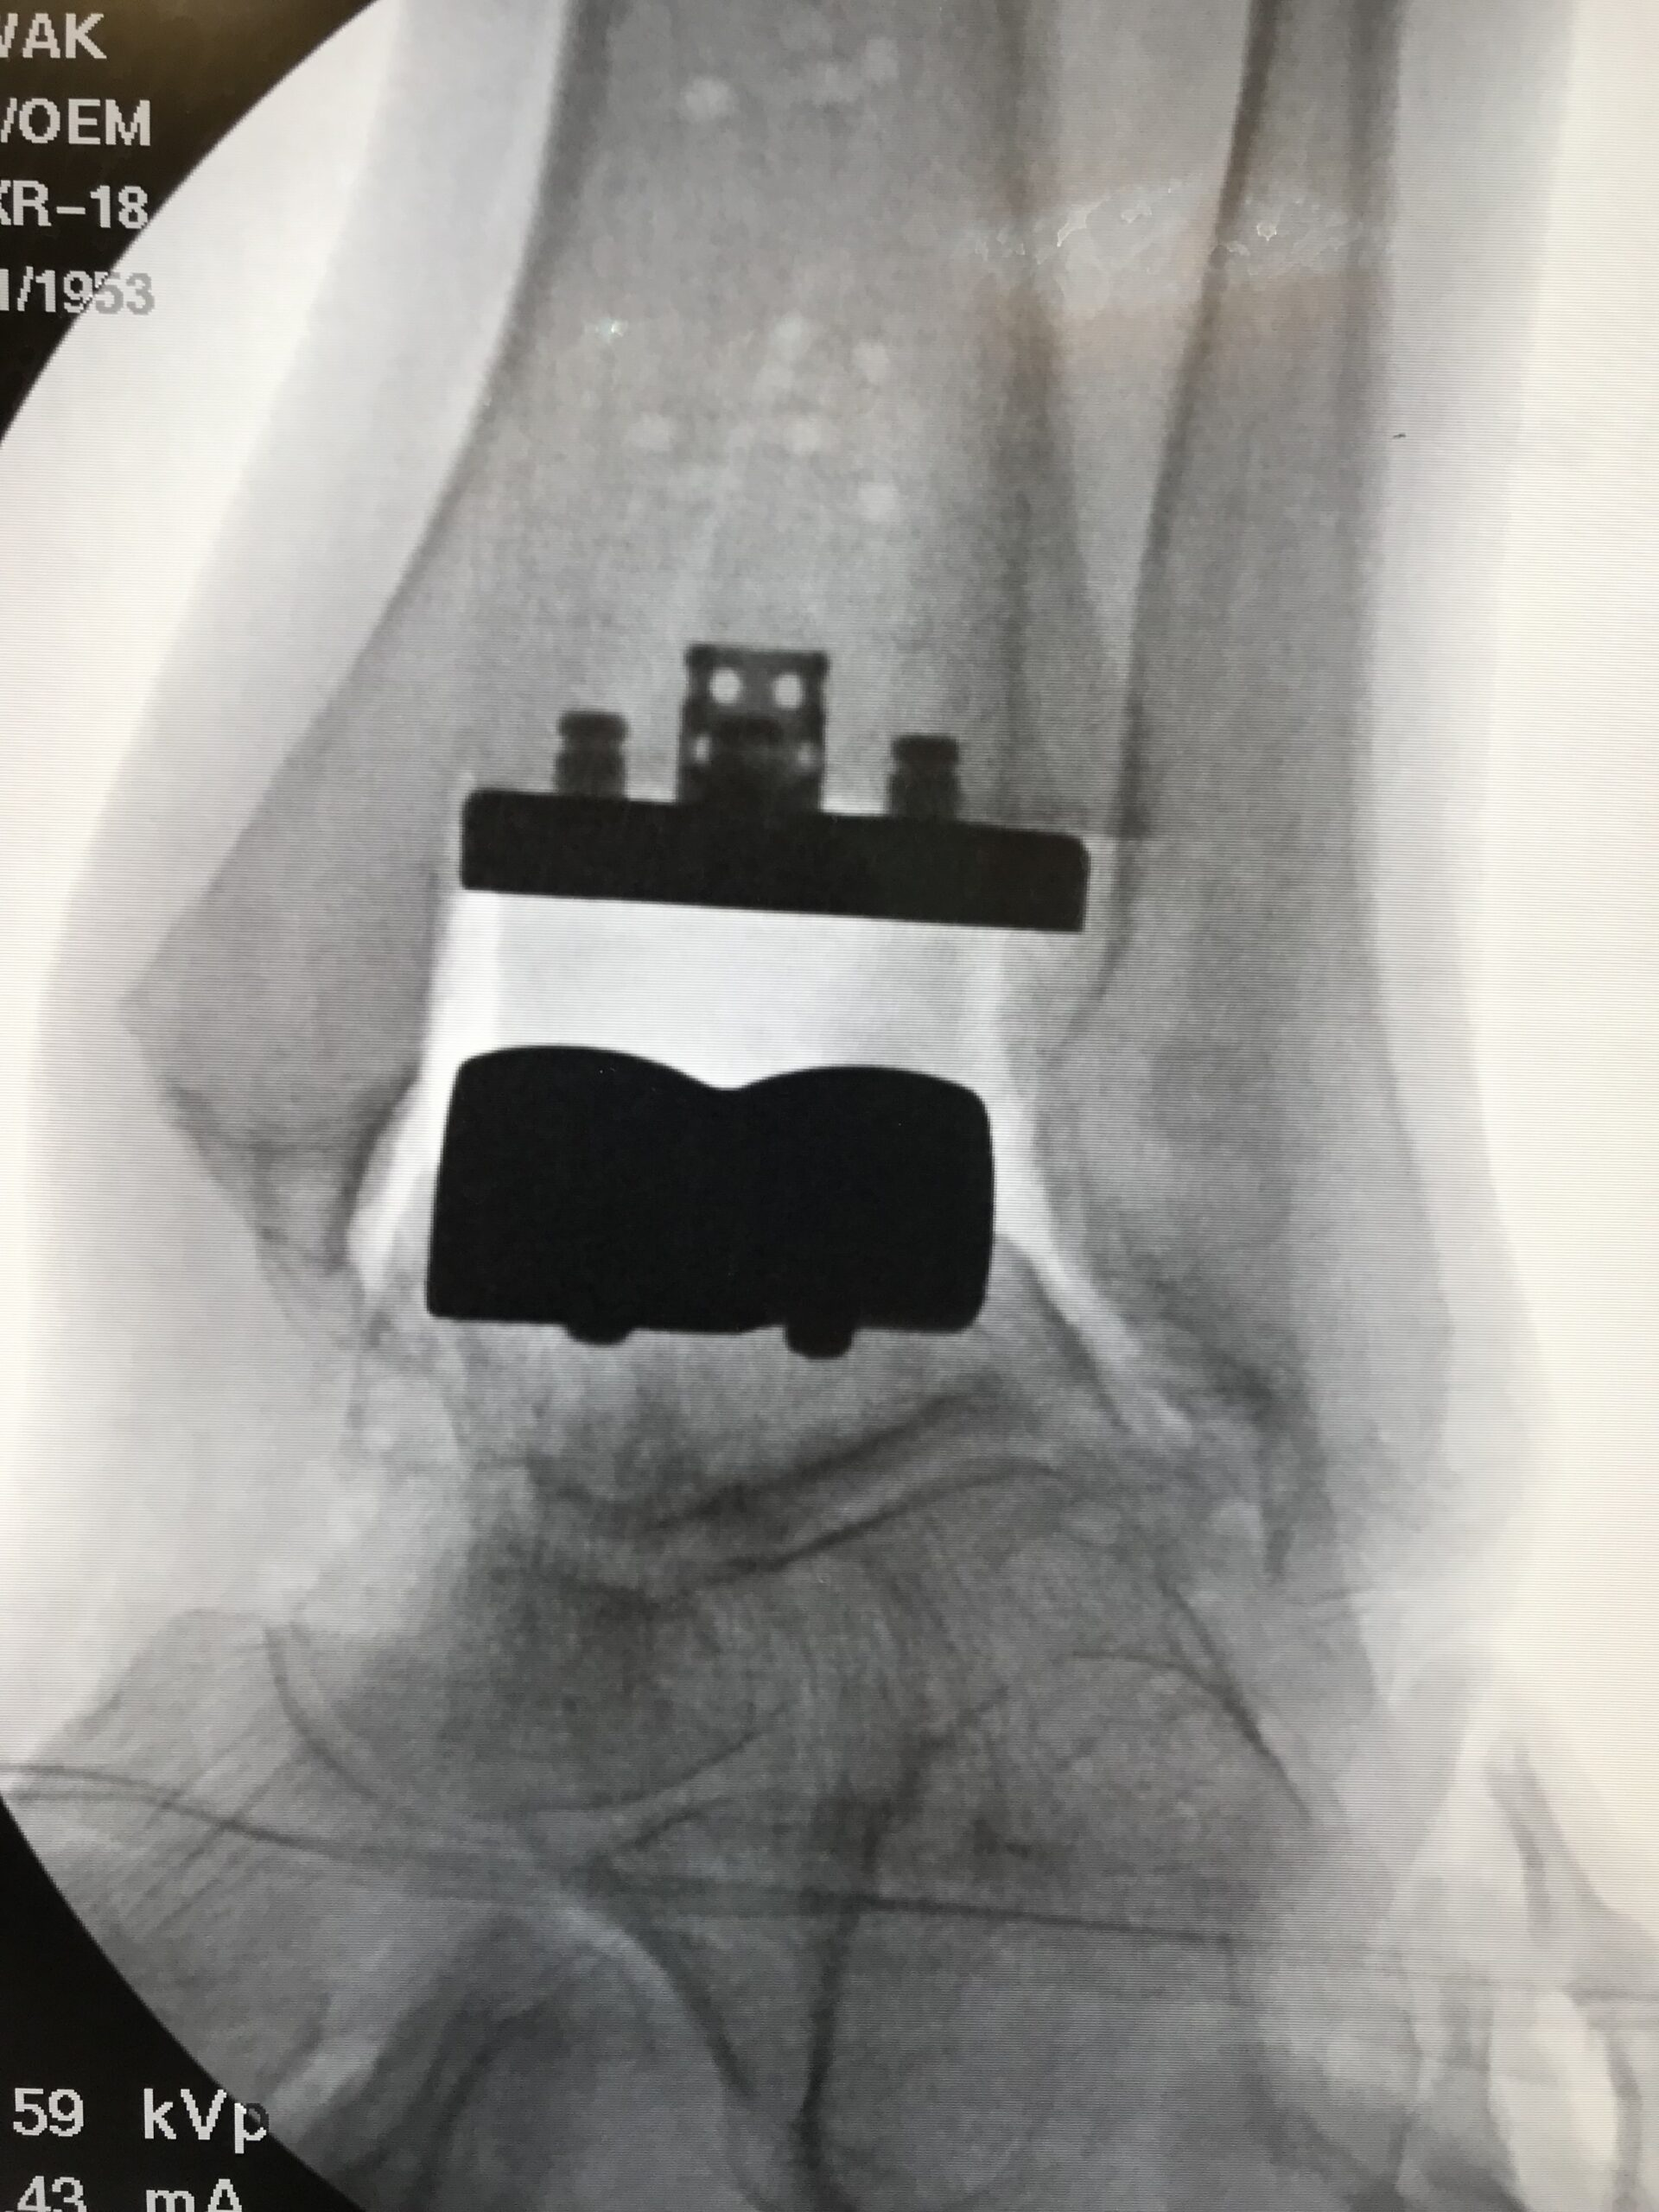 Total Ankle Replacement Arthroplasty x ray image c shasta orthopaedics 051721